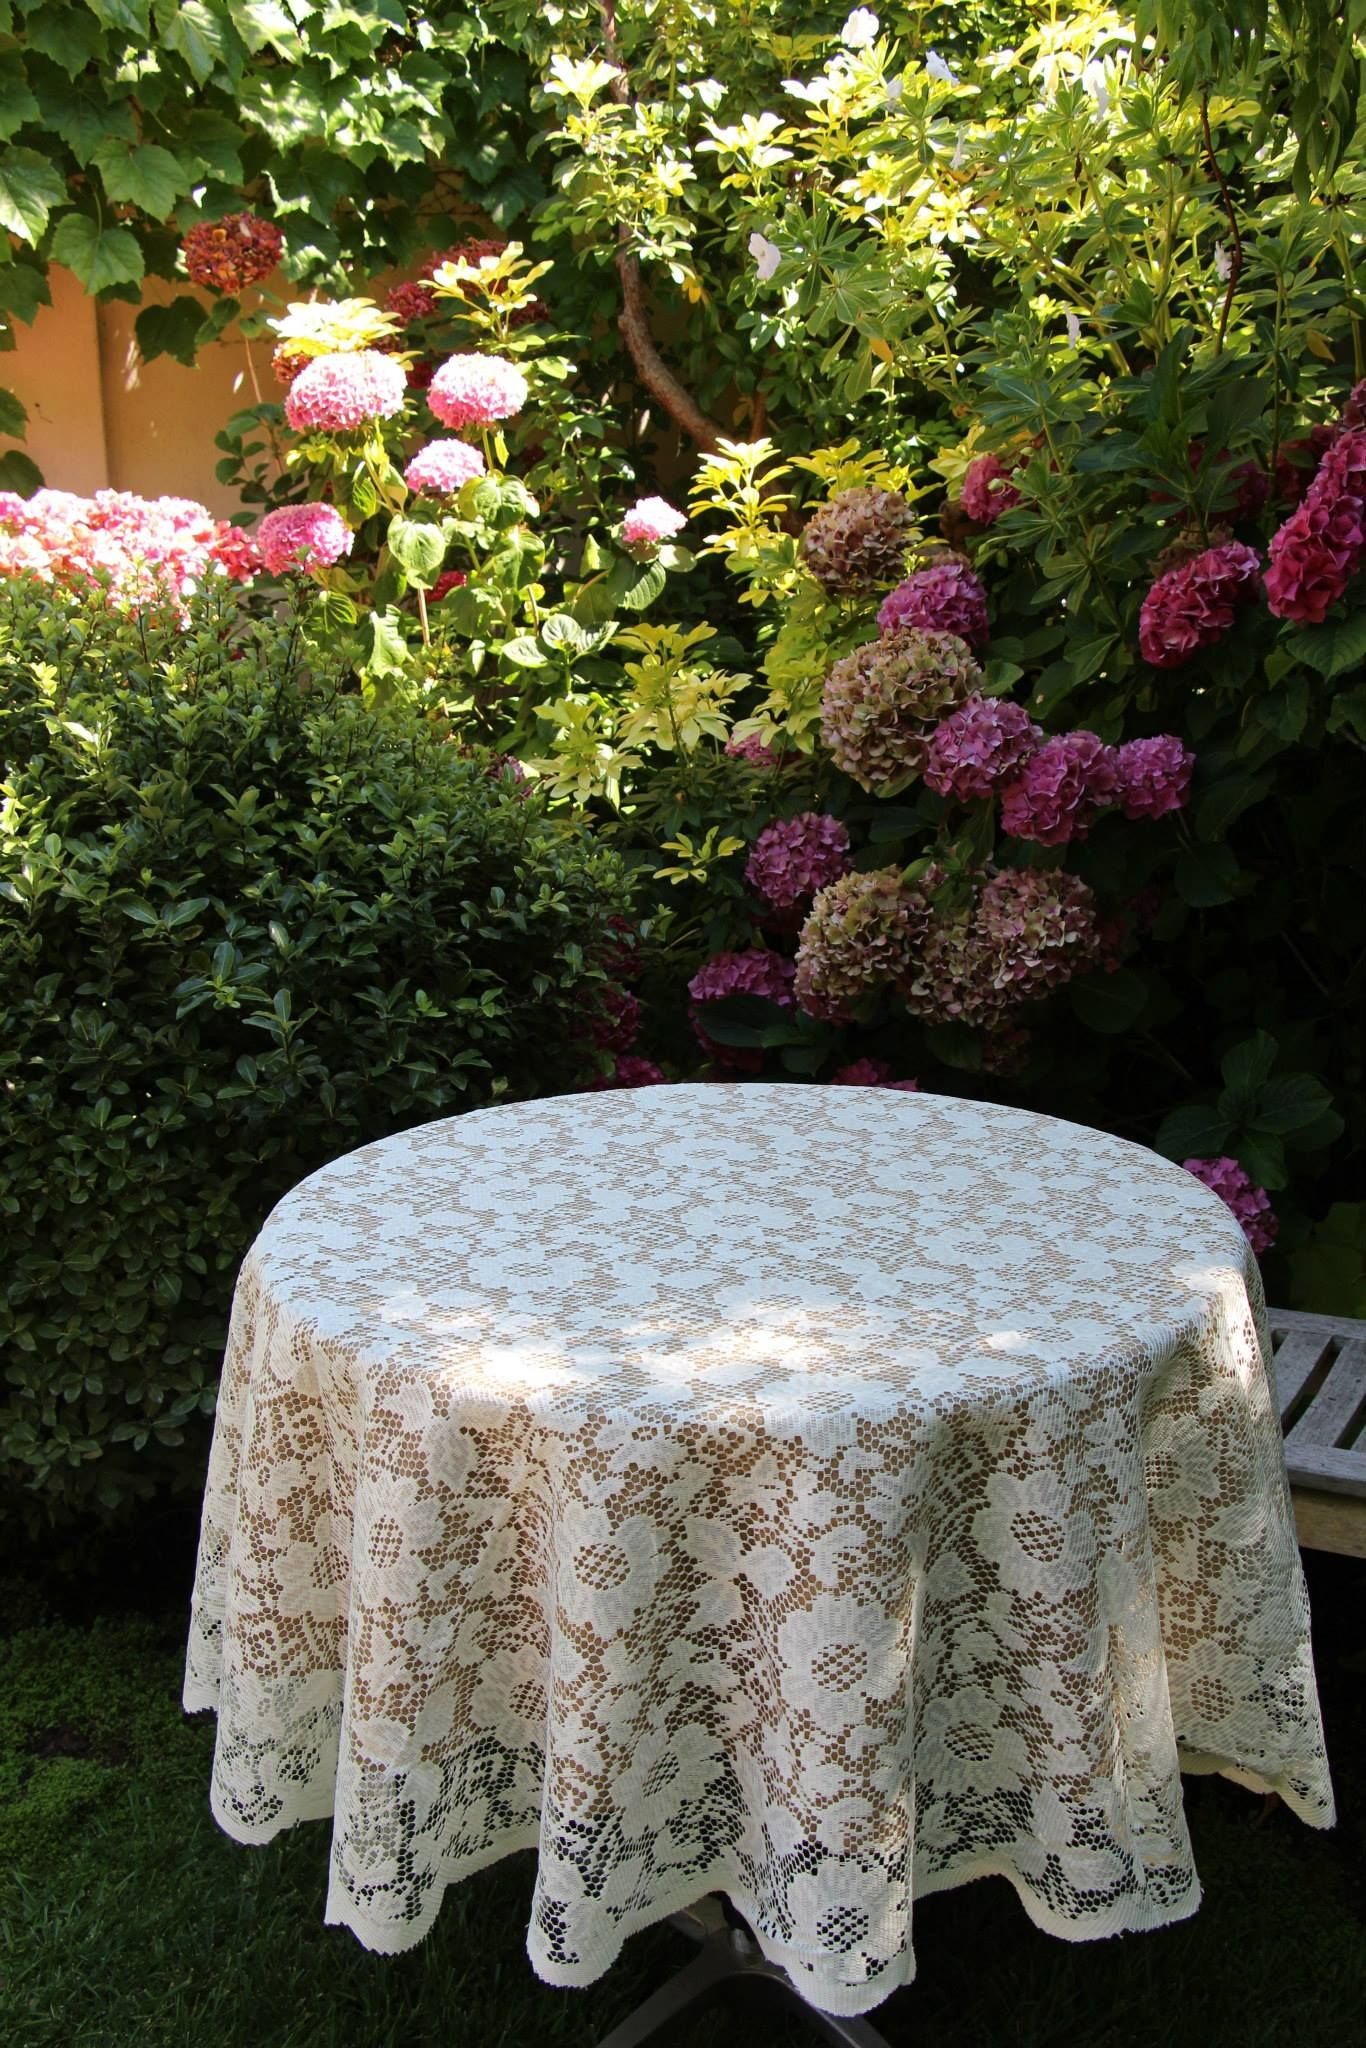 Havana Faux Burlap tablecloth and Lace Overlay #LoveMyLinens ...